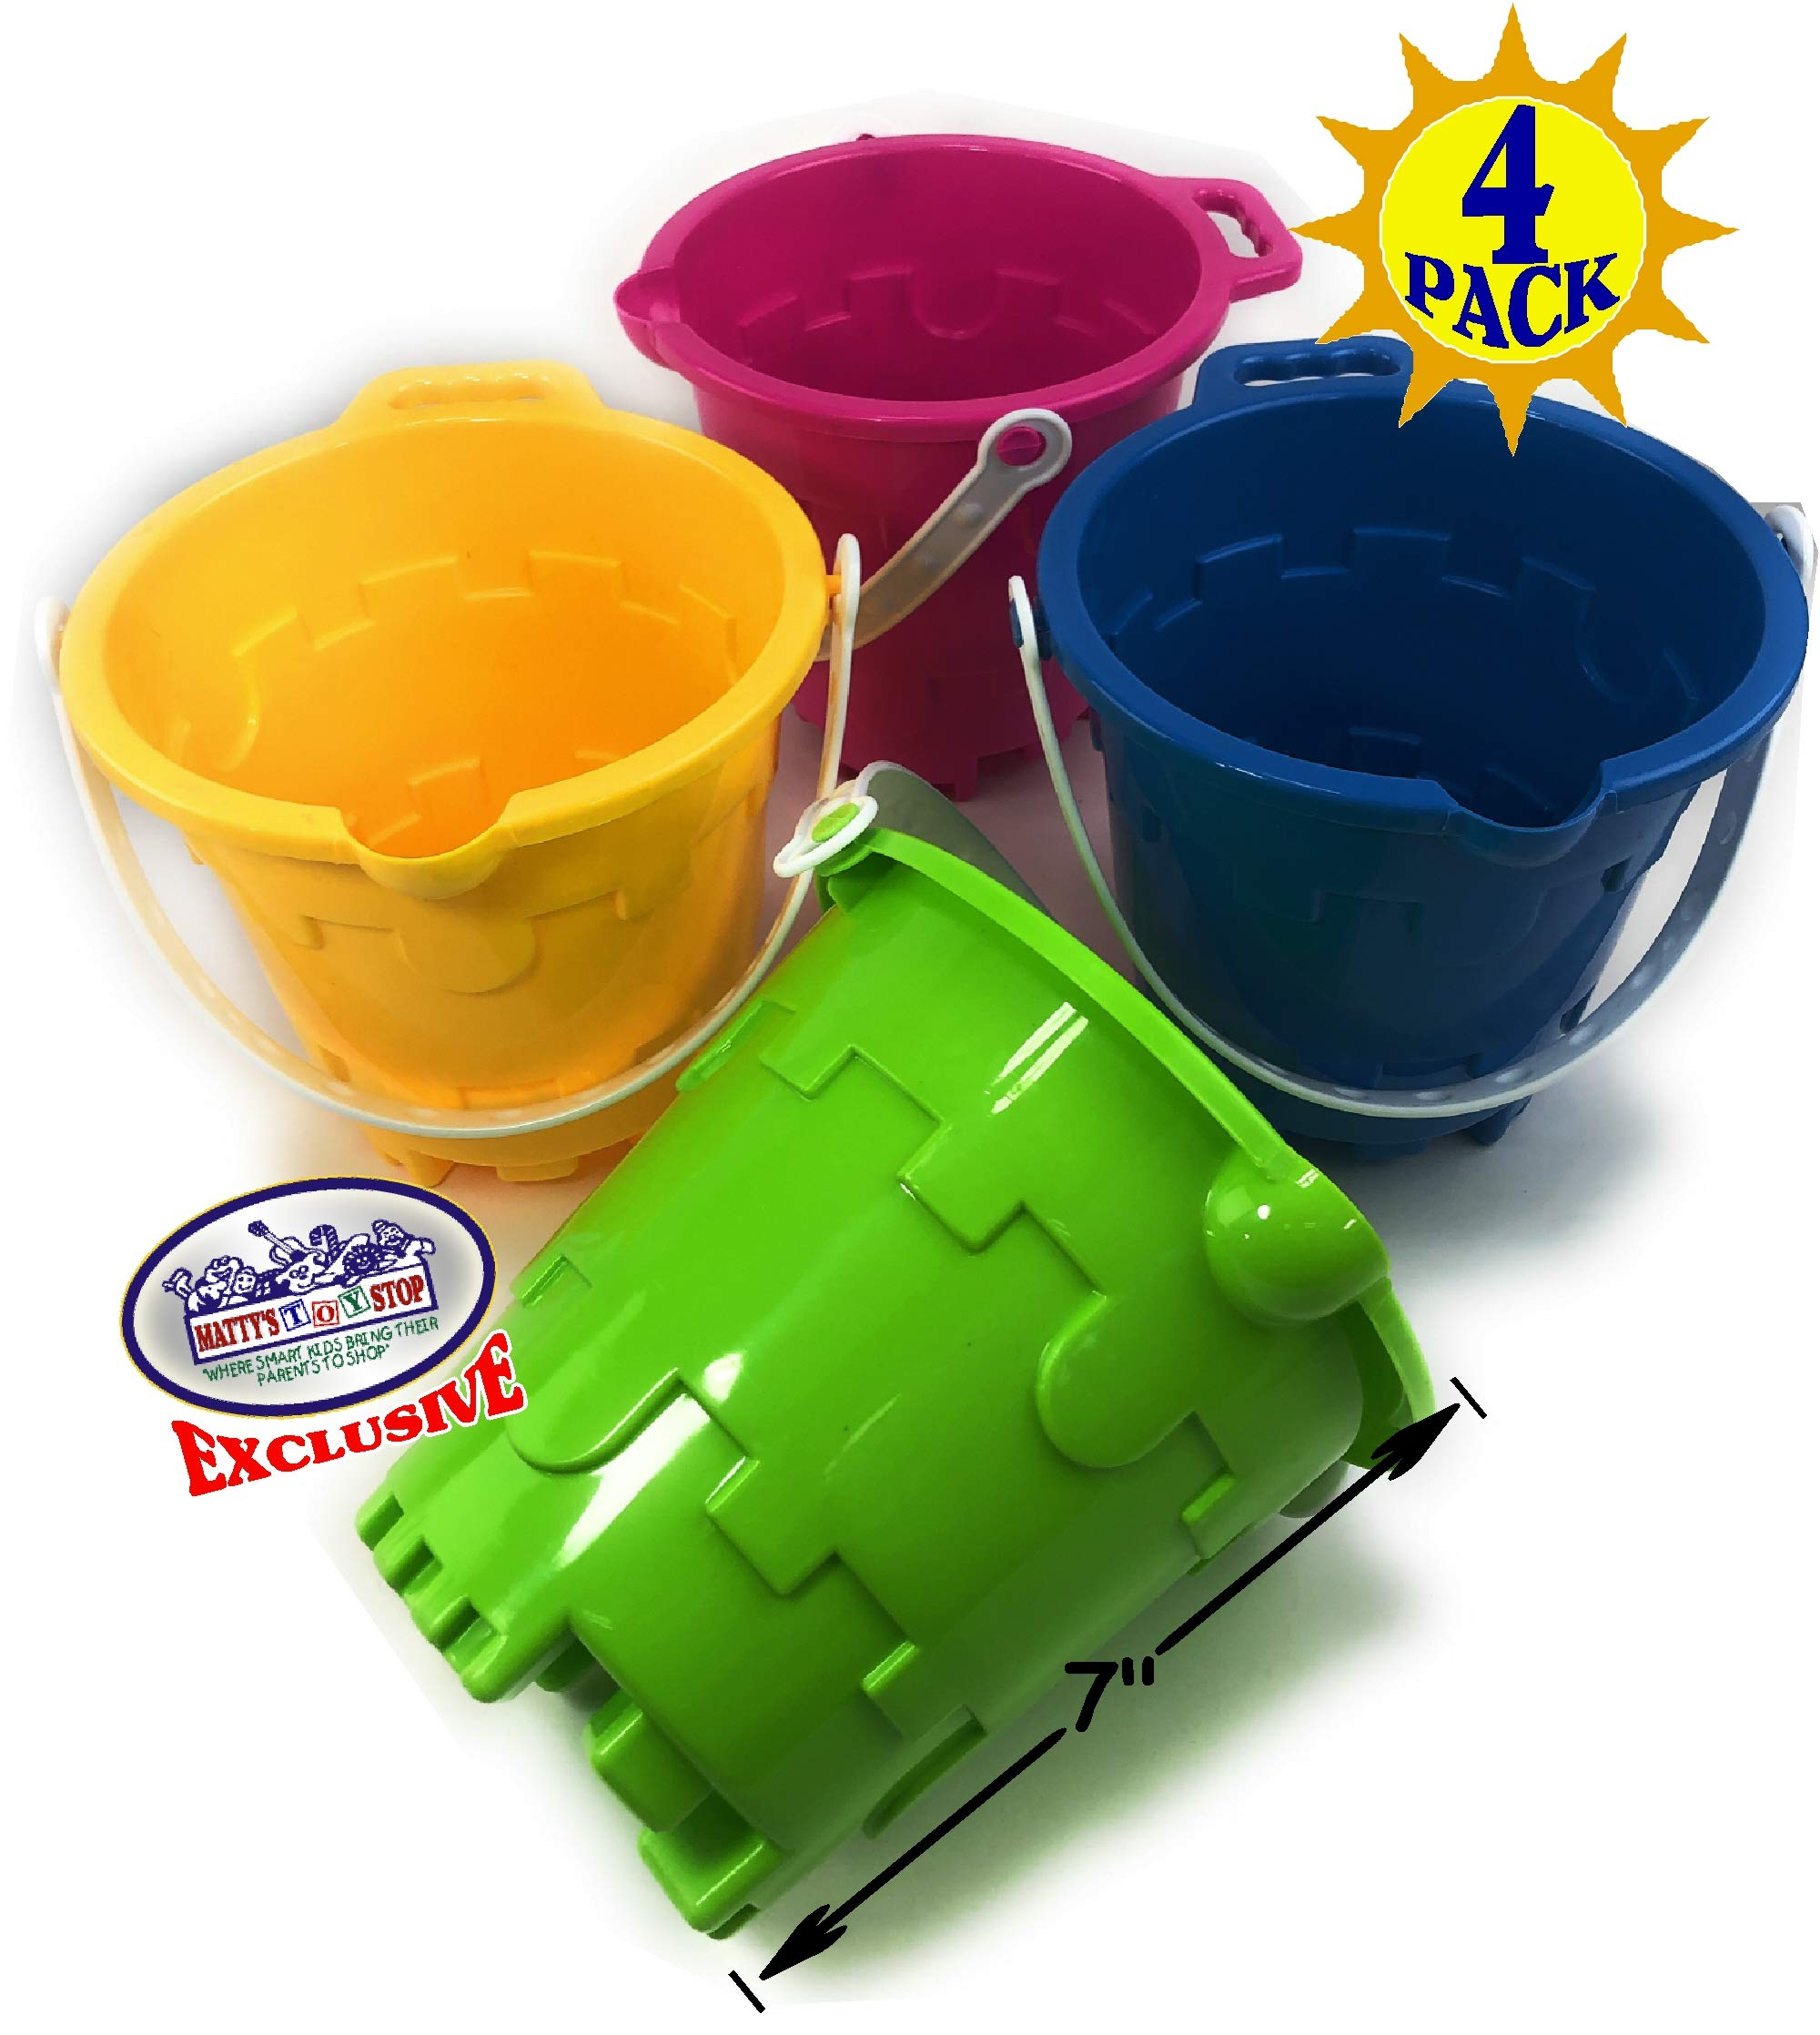 Matty's Toy Stop Beach Gear 7'' Plastic Castle Mold Sand Buckets (Pails) with Easy Pour Spout and Handle Blue, Pink, Green & Yellow Party Set Bundle - 4 Pack by Matty's Toy Stop